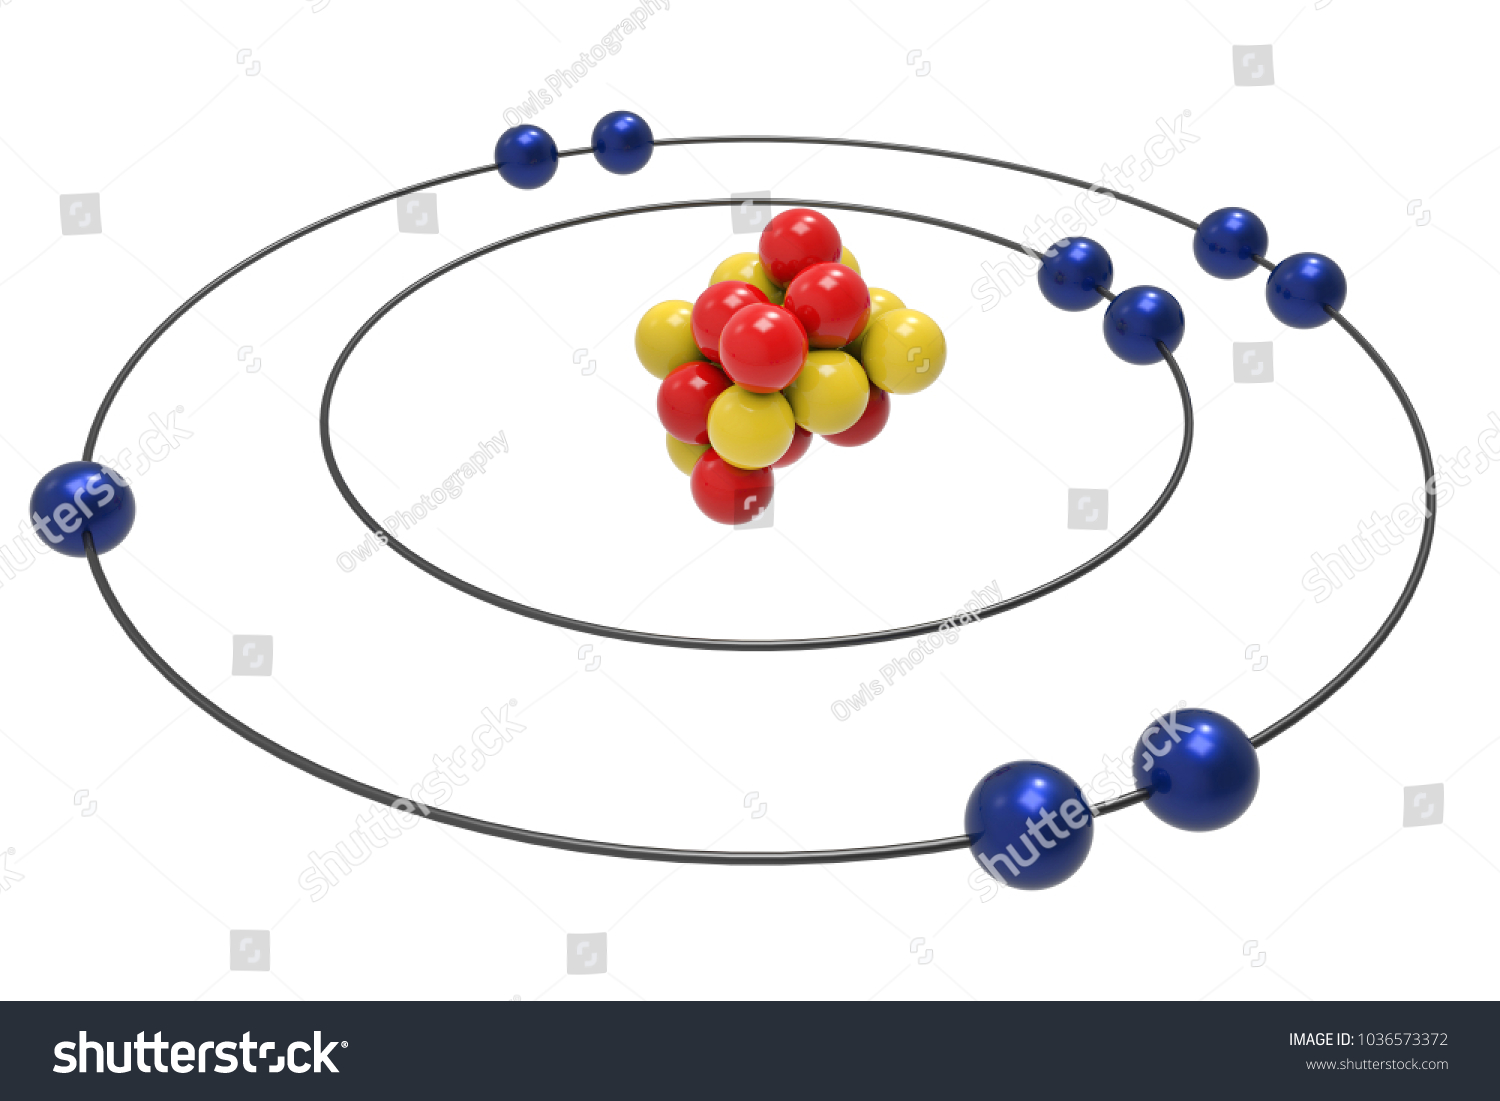 Bohr model fluorine atom proton neutron stock illustration bohr model of fluorine atom with proton neutron and electron science and chemical concept pooptronica Gallery